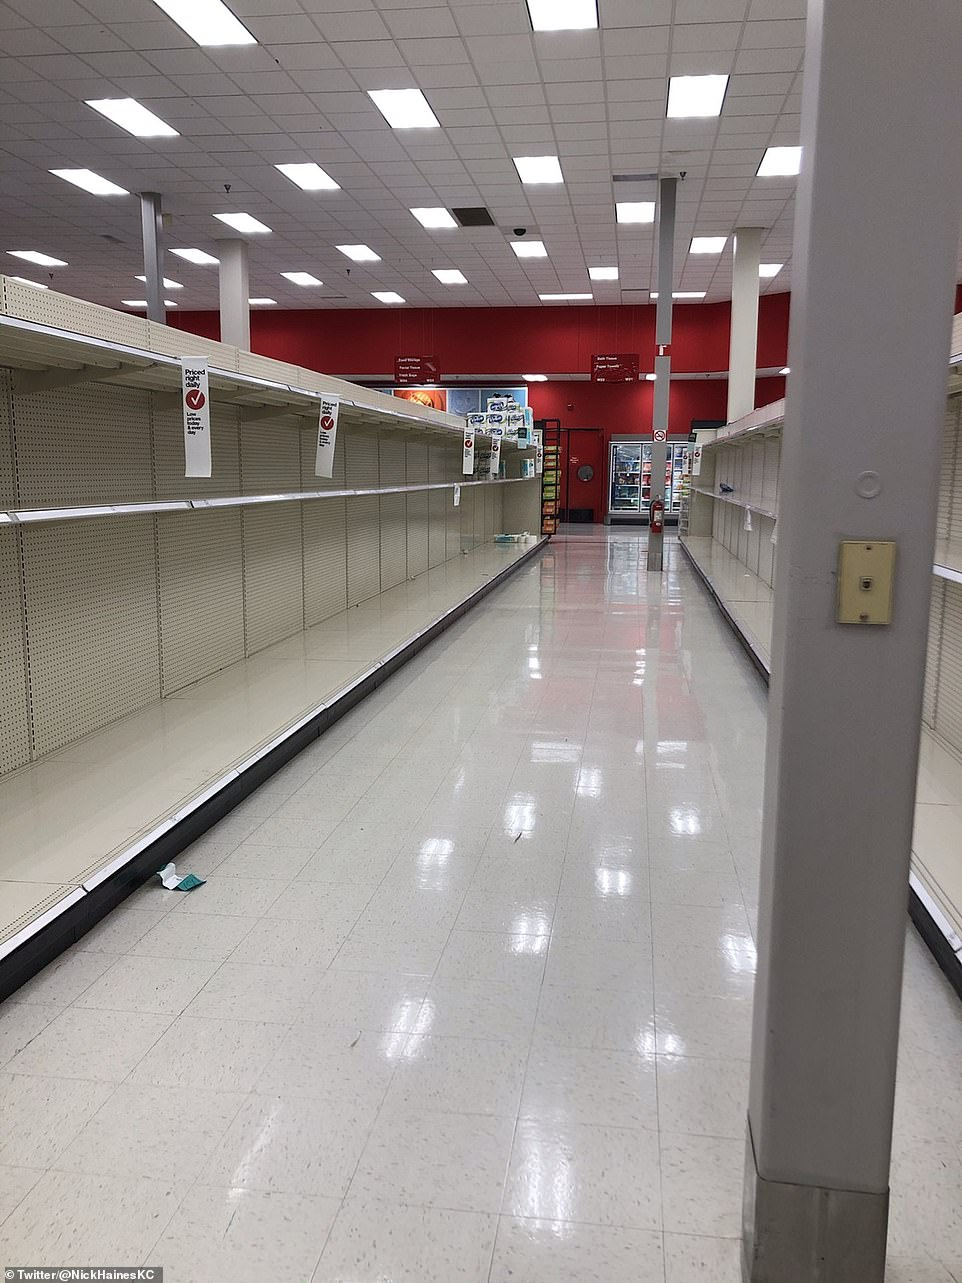 Kansas City: Companies like Walmart, Target and Wegman's curbed store hours for the public in order to give workers time to restock shelves